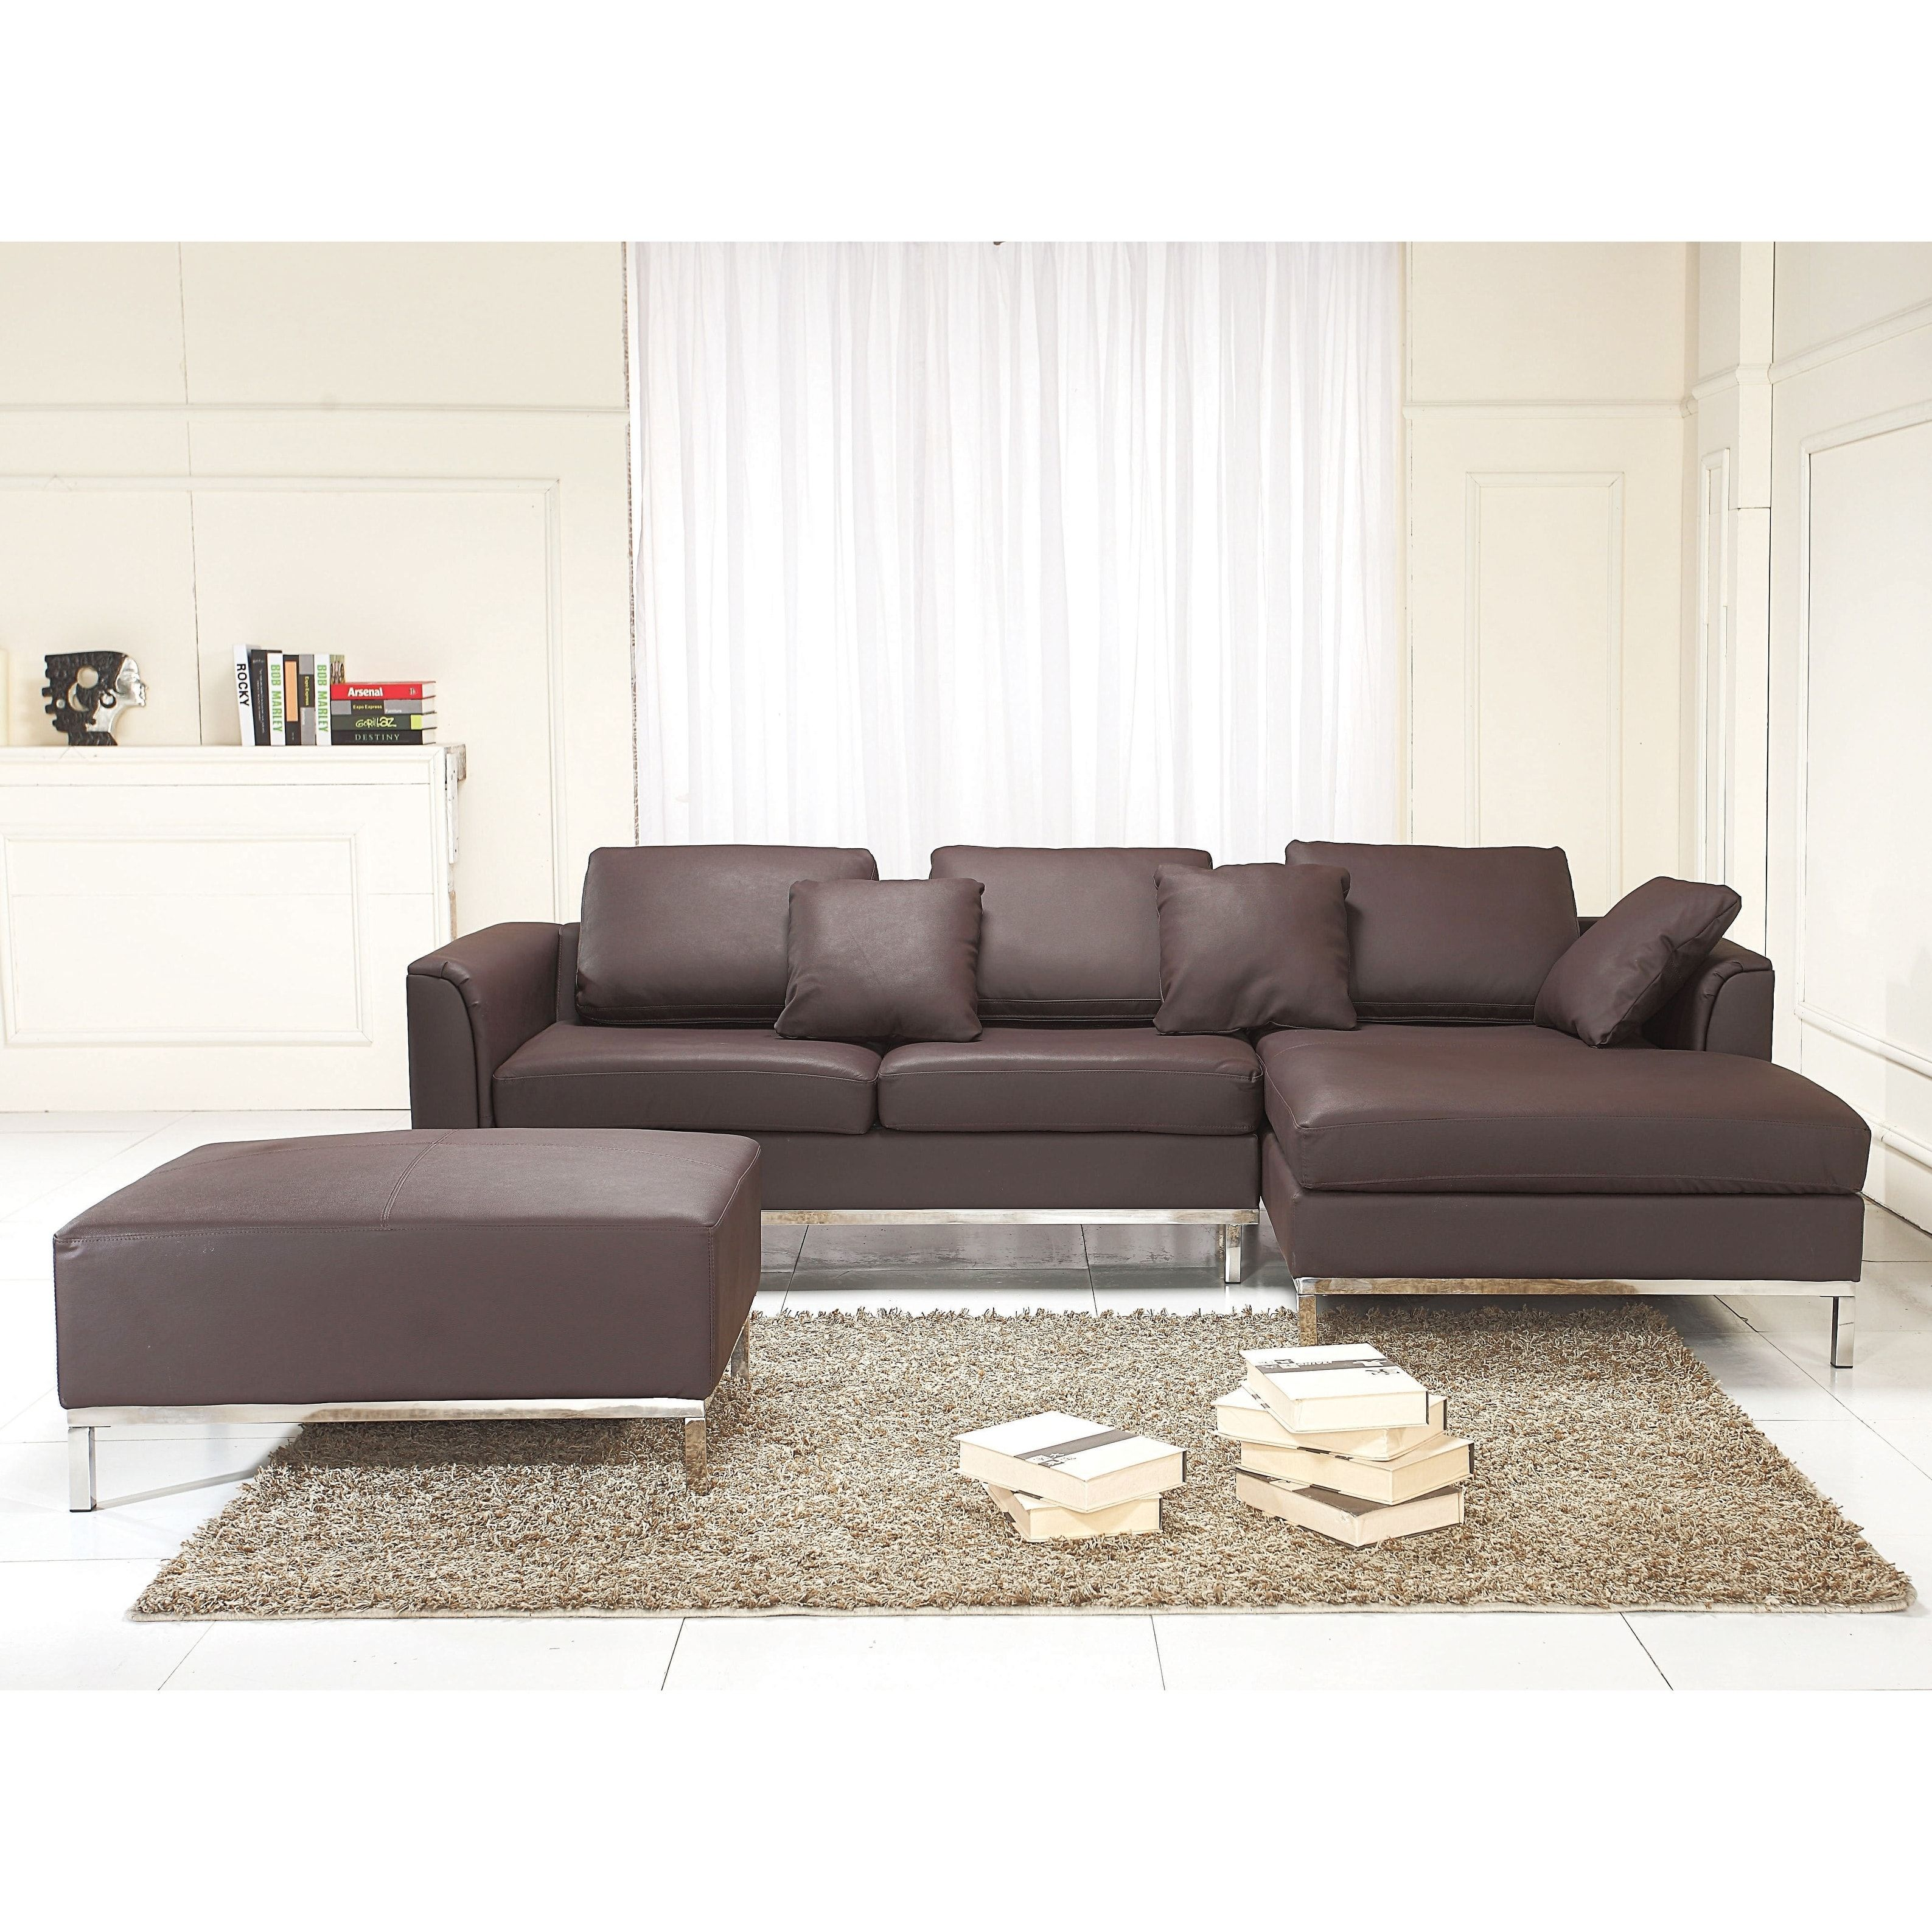 Strange Beliani Oslo Brown Leather Sectional Sofa With Ottoman Gmtry Best Dining Table And Chair Ideas Images Gmtryco